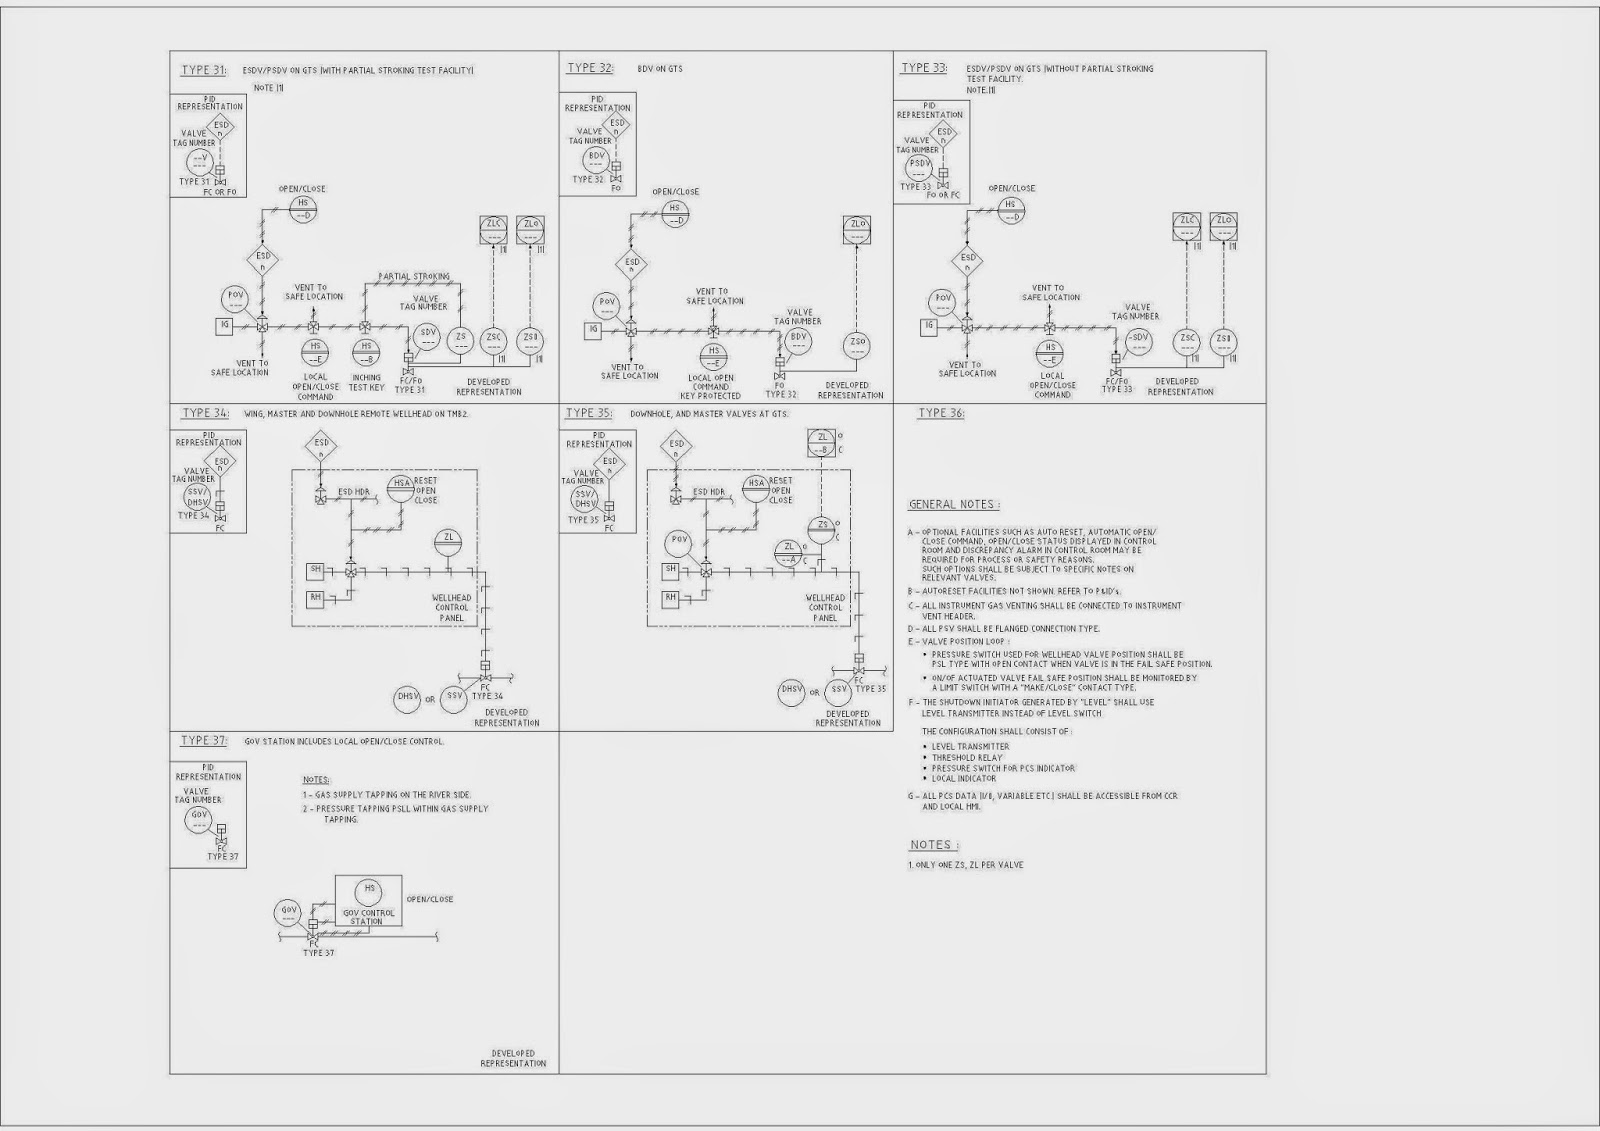 Rnd Baidin Egwar St Piping Amp Instrumentation Diagram